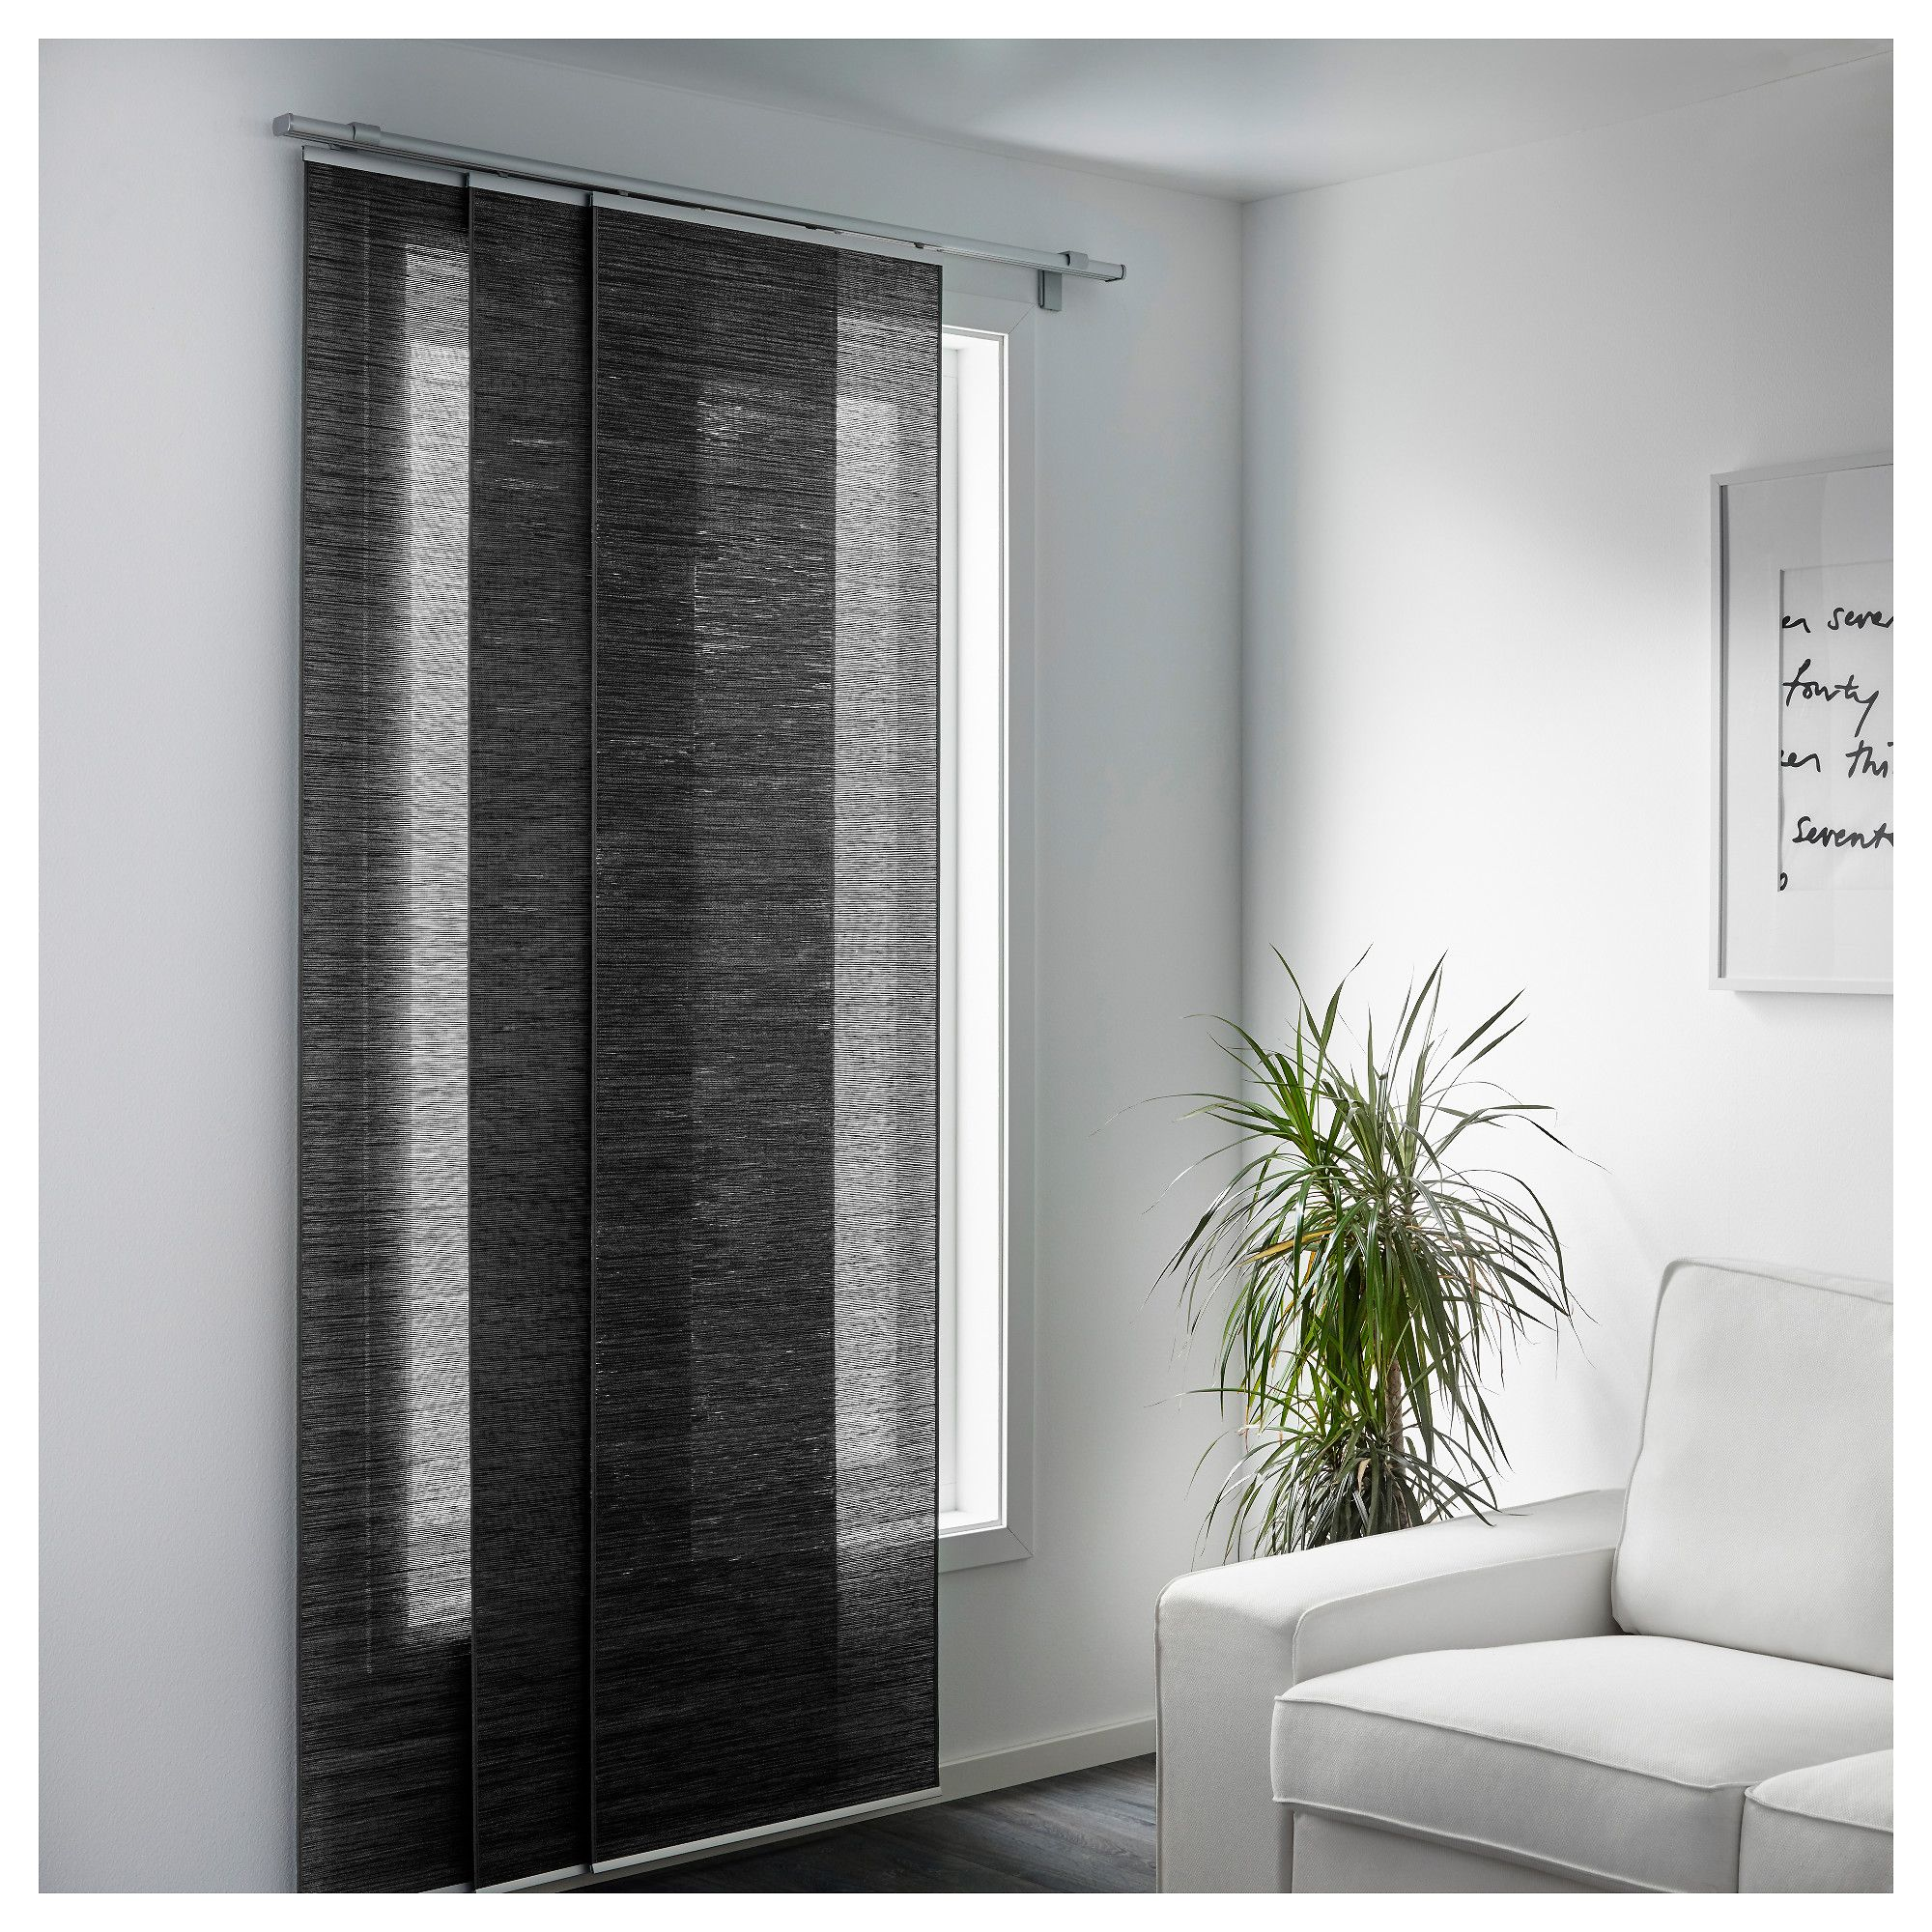 fÖnsterviva panel curtain, dark gray | products | pinterest